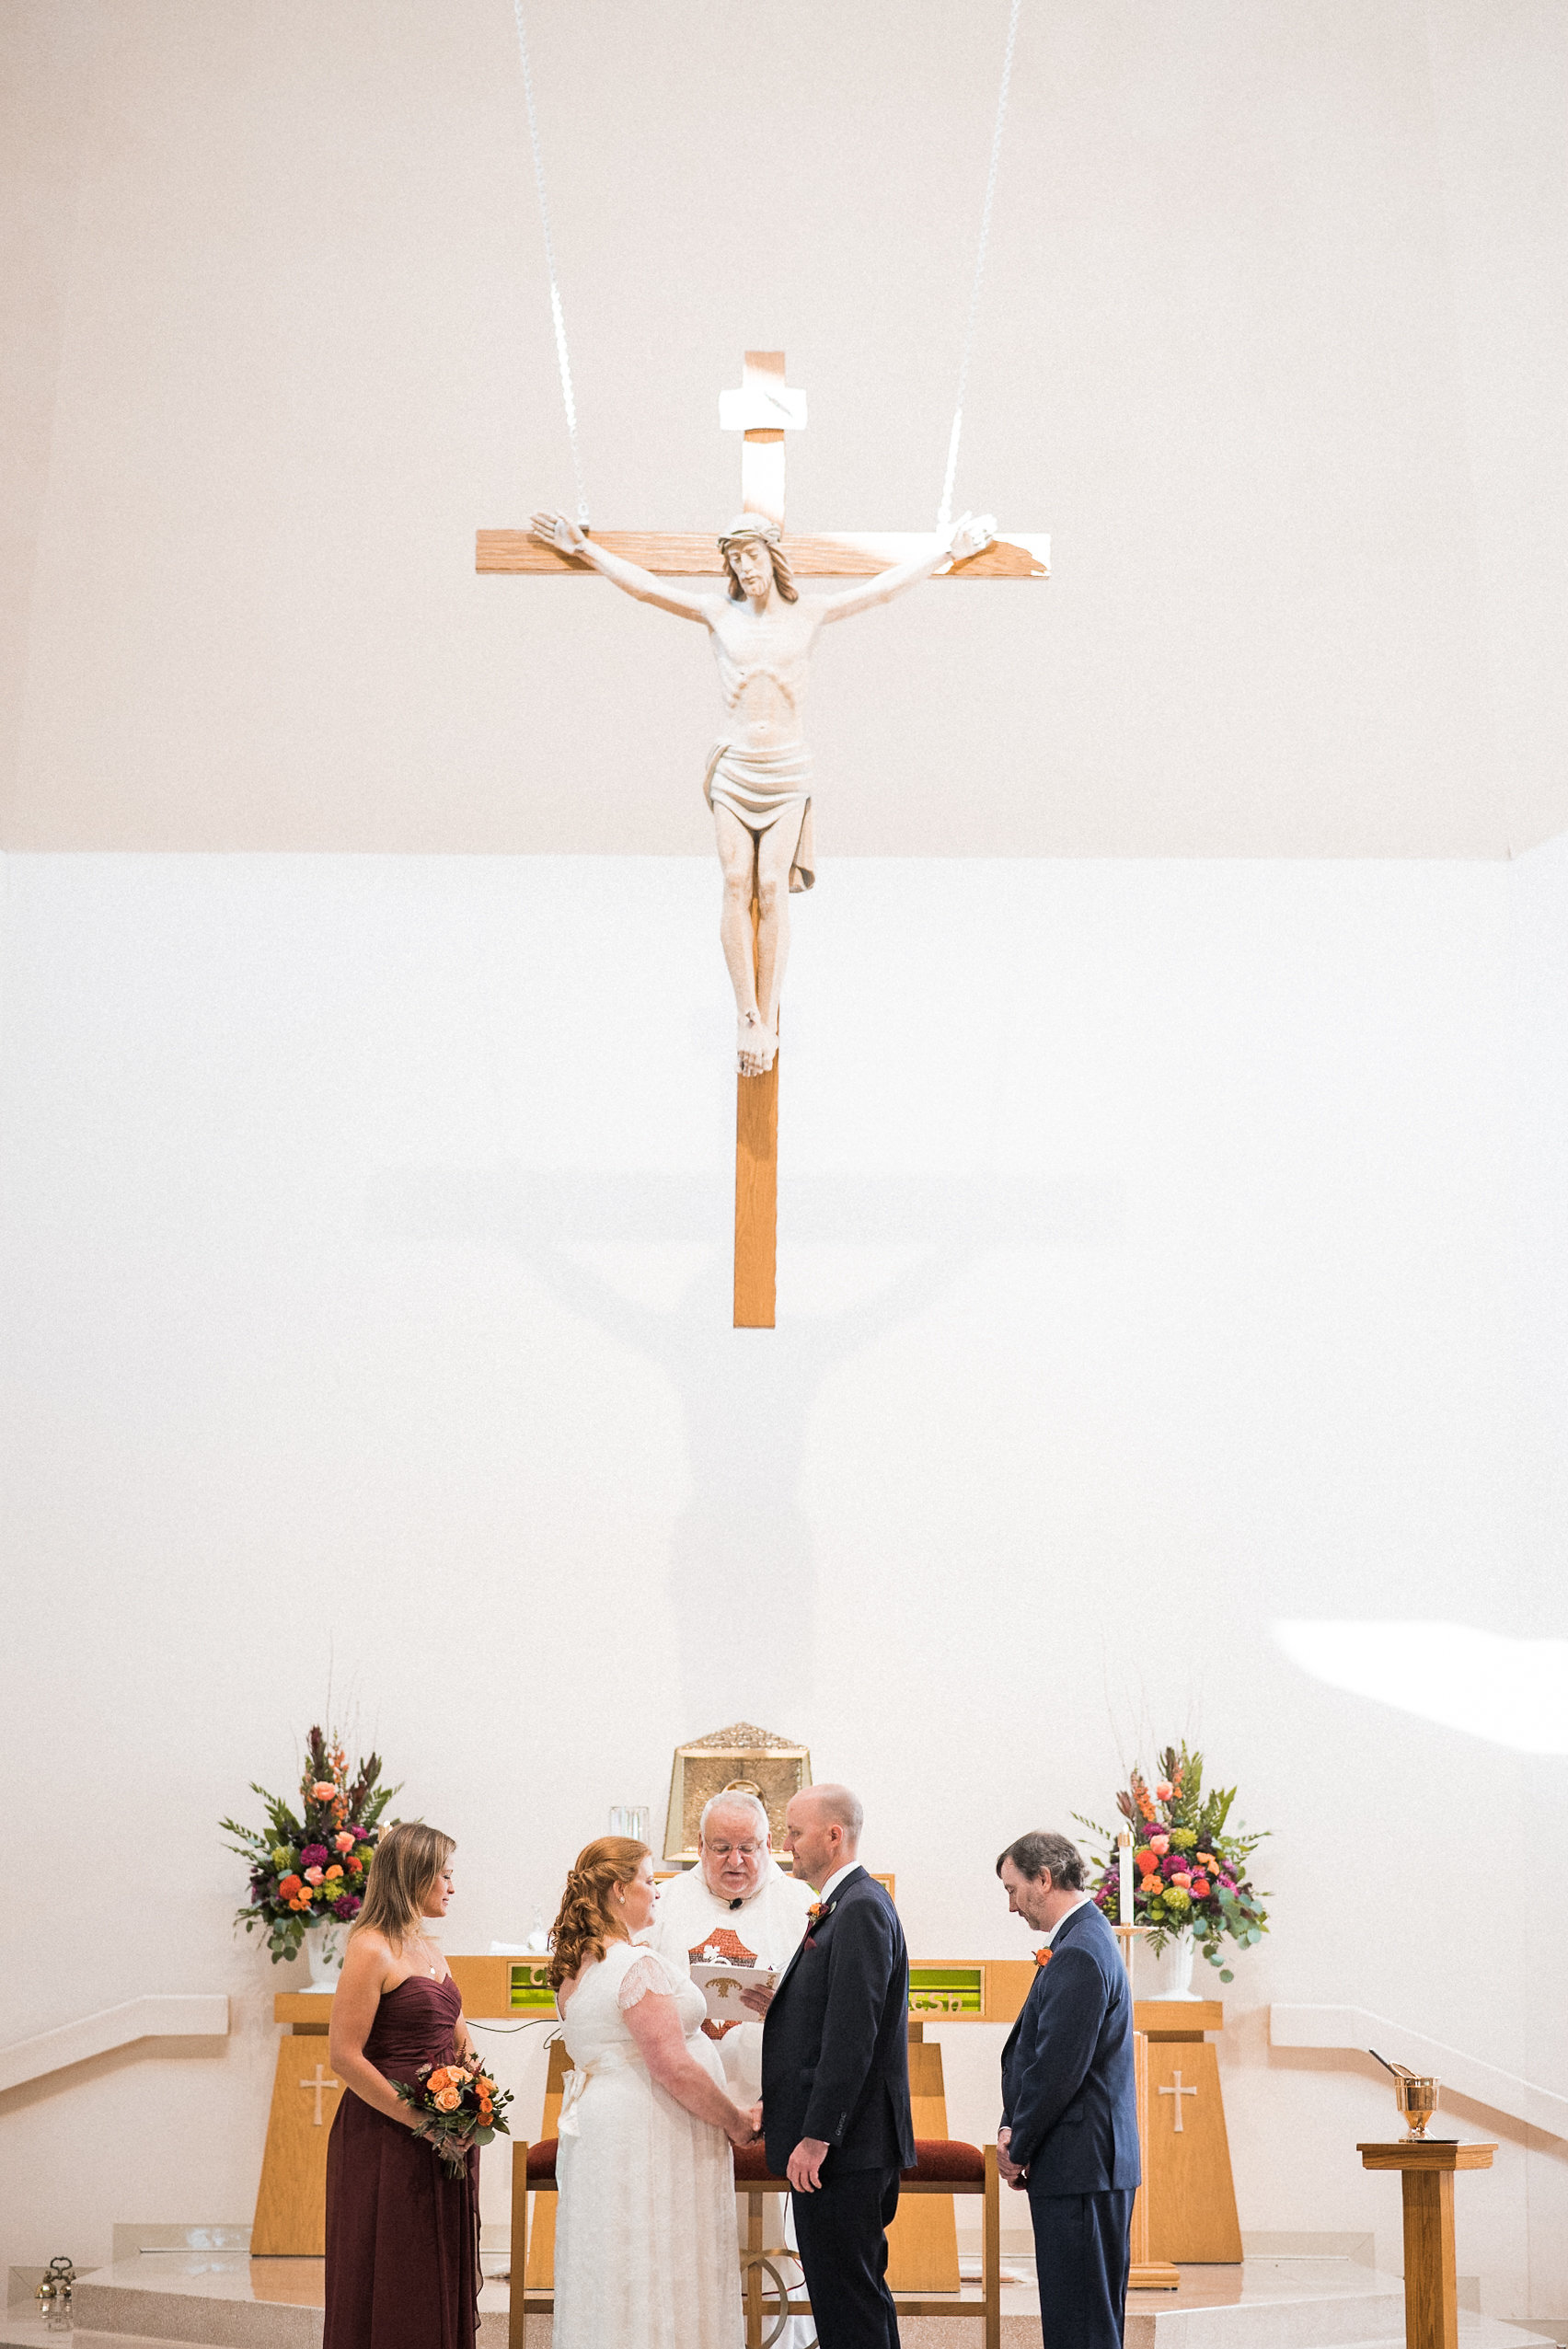 Bride and groom under crucifix